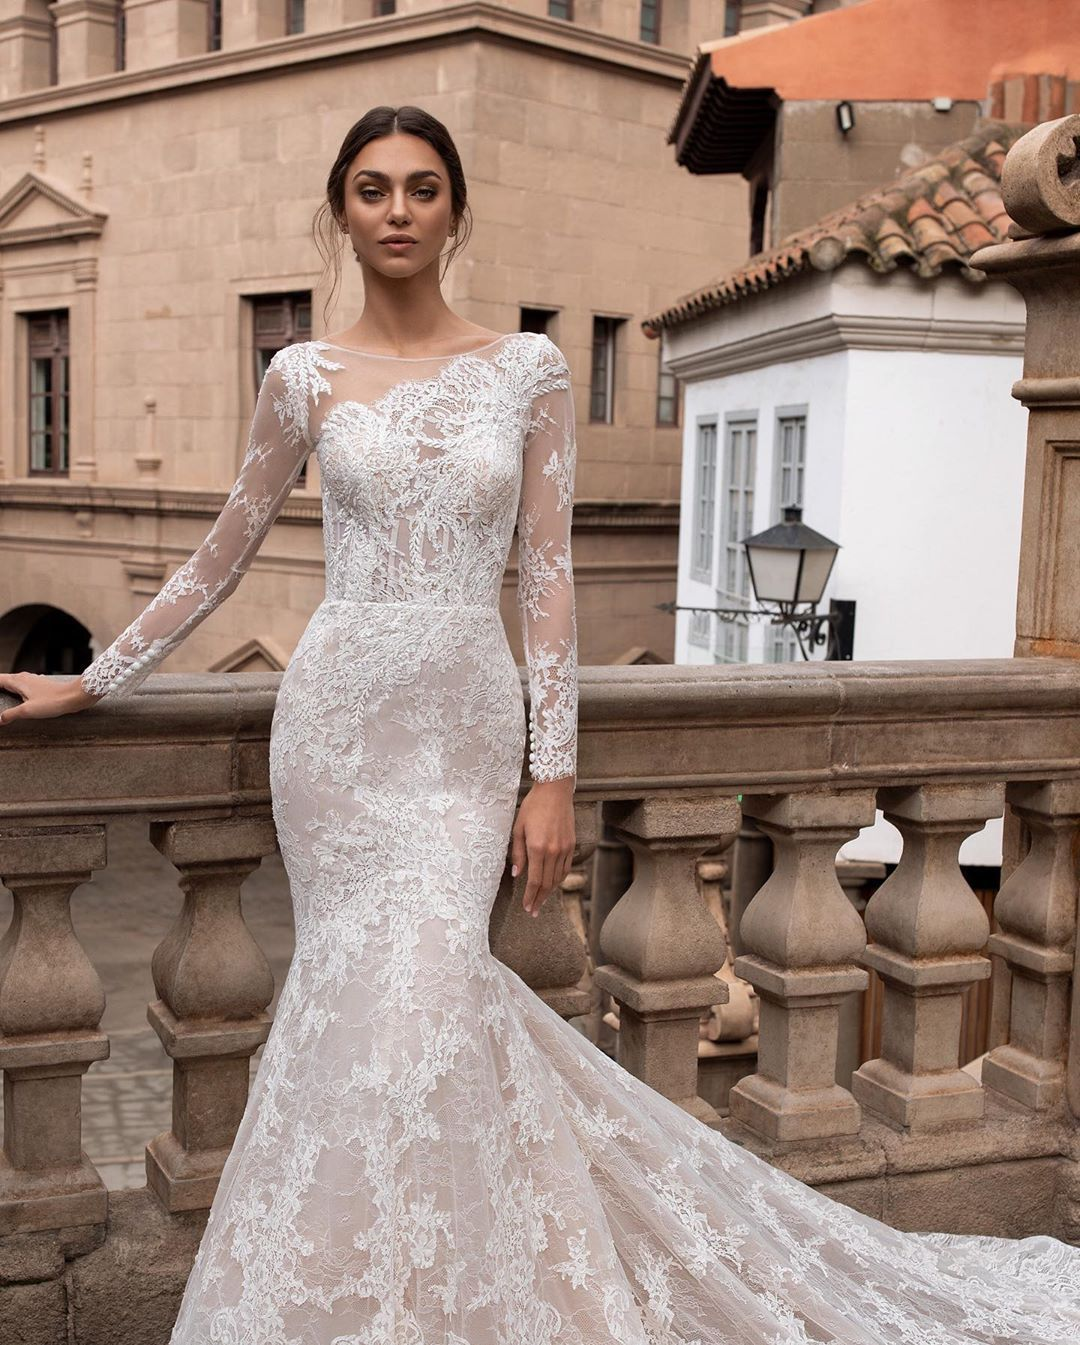 Long Sleeves And All Over Chantilly Lace Click On The Link In Bio To Discove Pronovias Wedding Dress Asymmetrical Wedding Dress Wedding Dress Silhouette Guide [ 1345 x 1080 Pixel ]